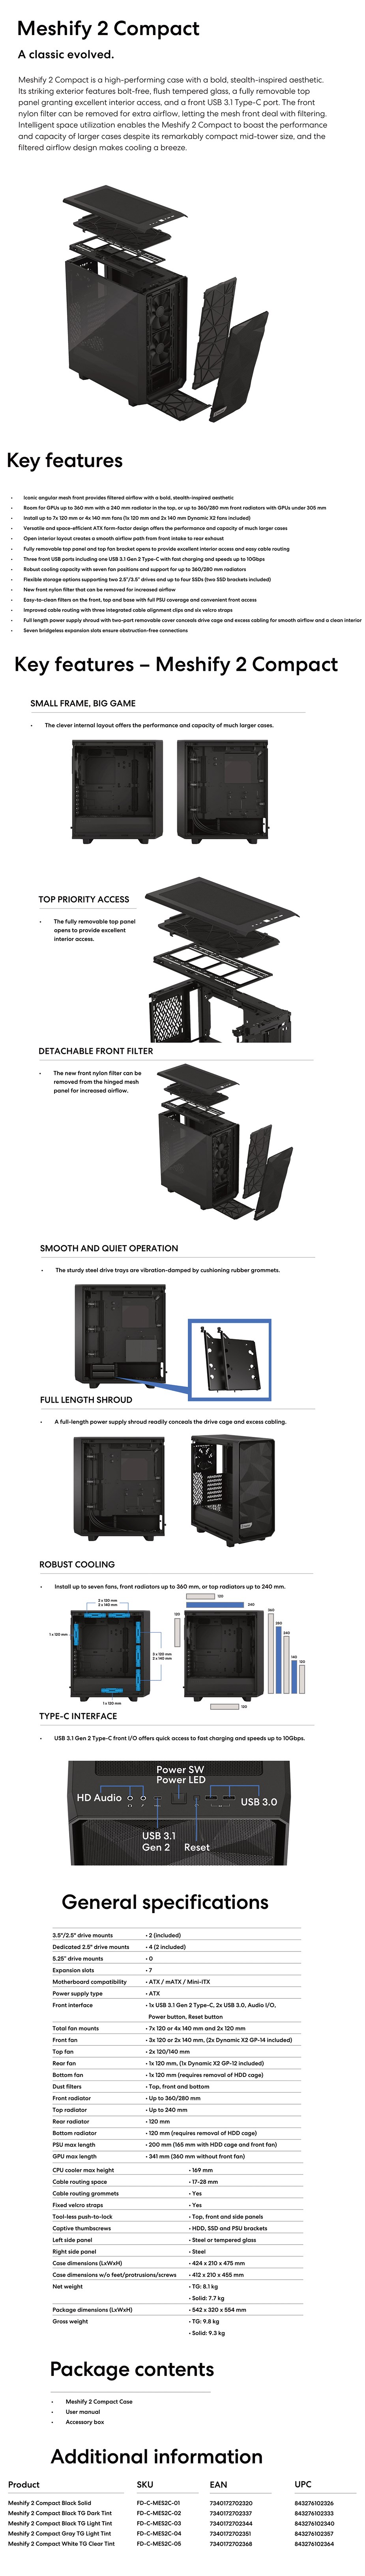 Fractal Design Meshify 2 Compact Solid Mid-Tower ATX Case - Desktop Overview 1